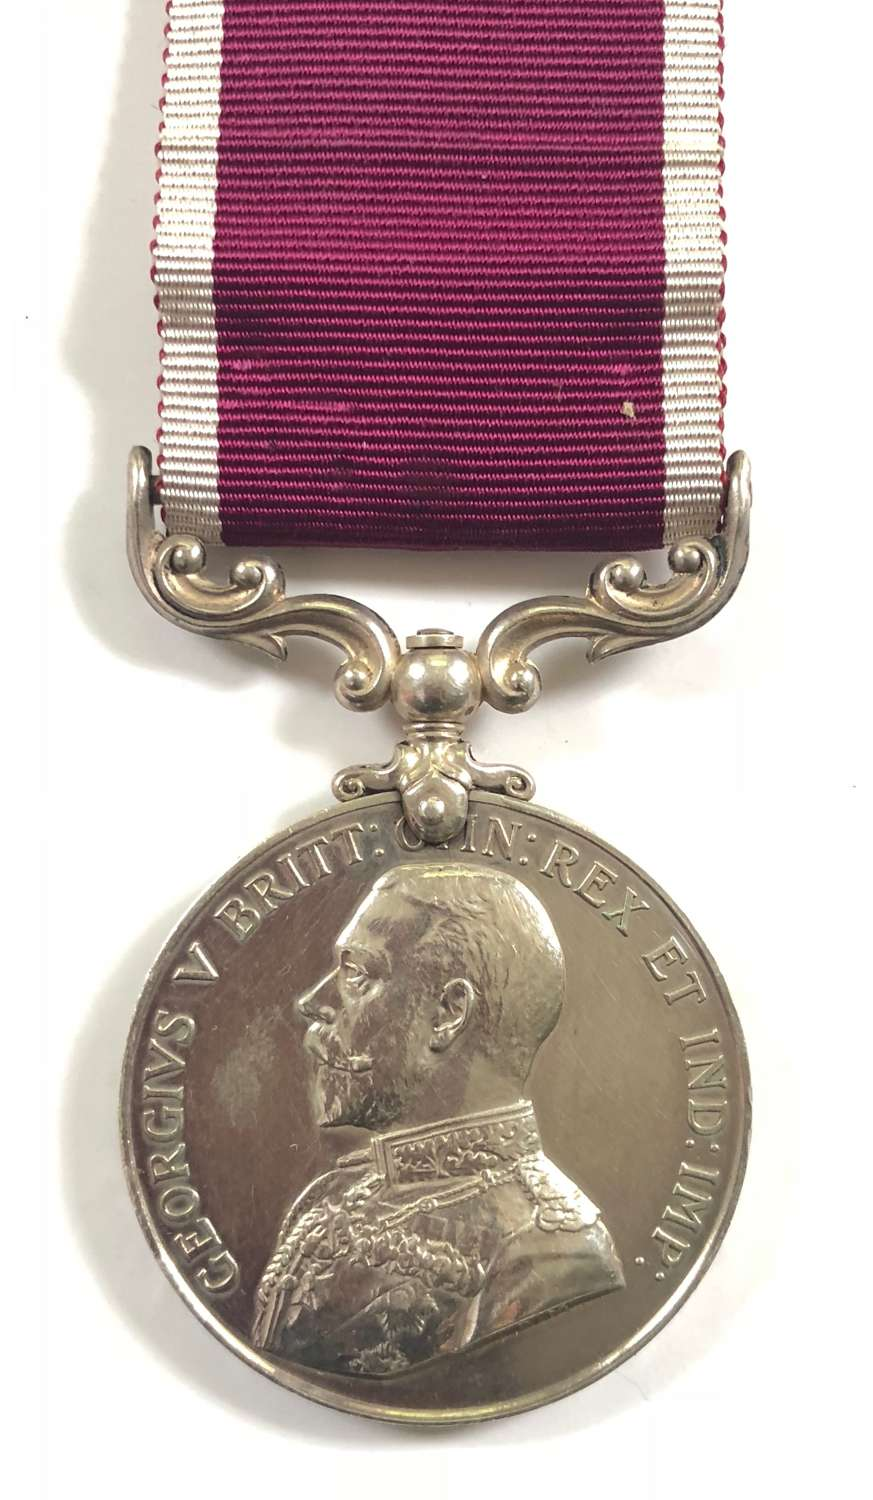 2nd Life Guards Long Service & Good Conduct Medal.